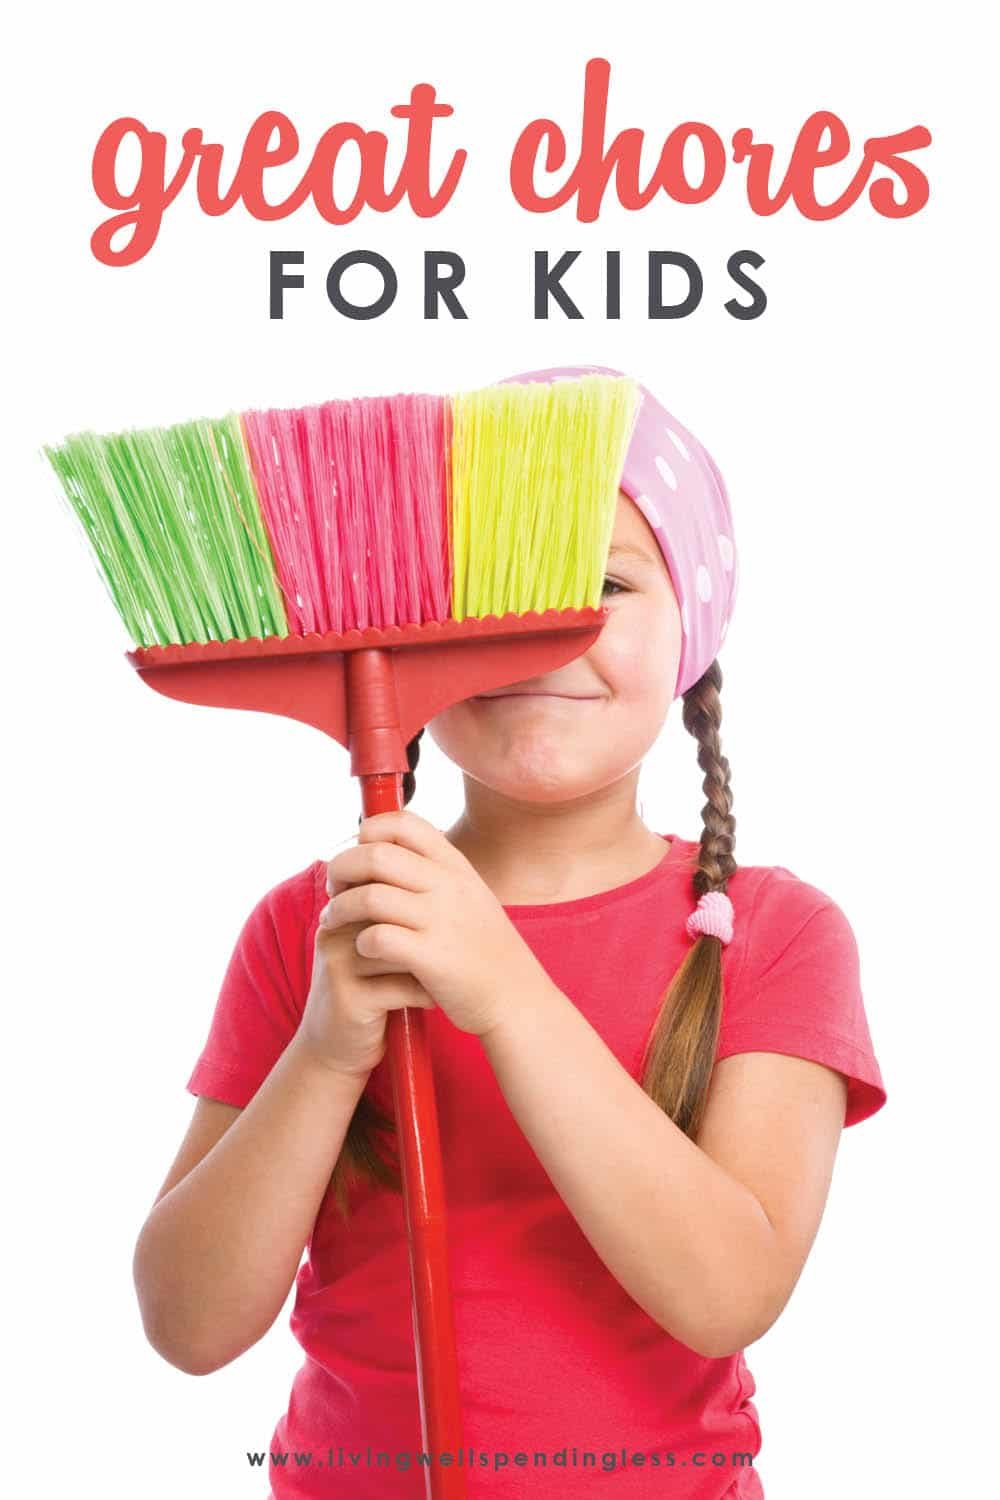 Are chores around your house well, a chore? It can be a challenge to get kids motivated to help out around the house, but getting kids to do their chores not only makes family life run smoother, it is essential to their own development and self-esteem. This in-depth post even includes four different types of printable chore charts, plus a helpful list of age-appropriate chores! Best of all, they're free! #chorecharts #freechorecharts #chorechartsforkids #freechorechartsforkids #freeprintables